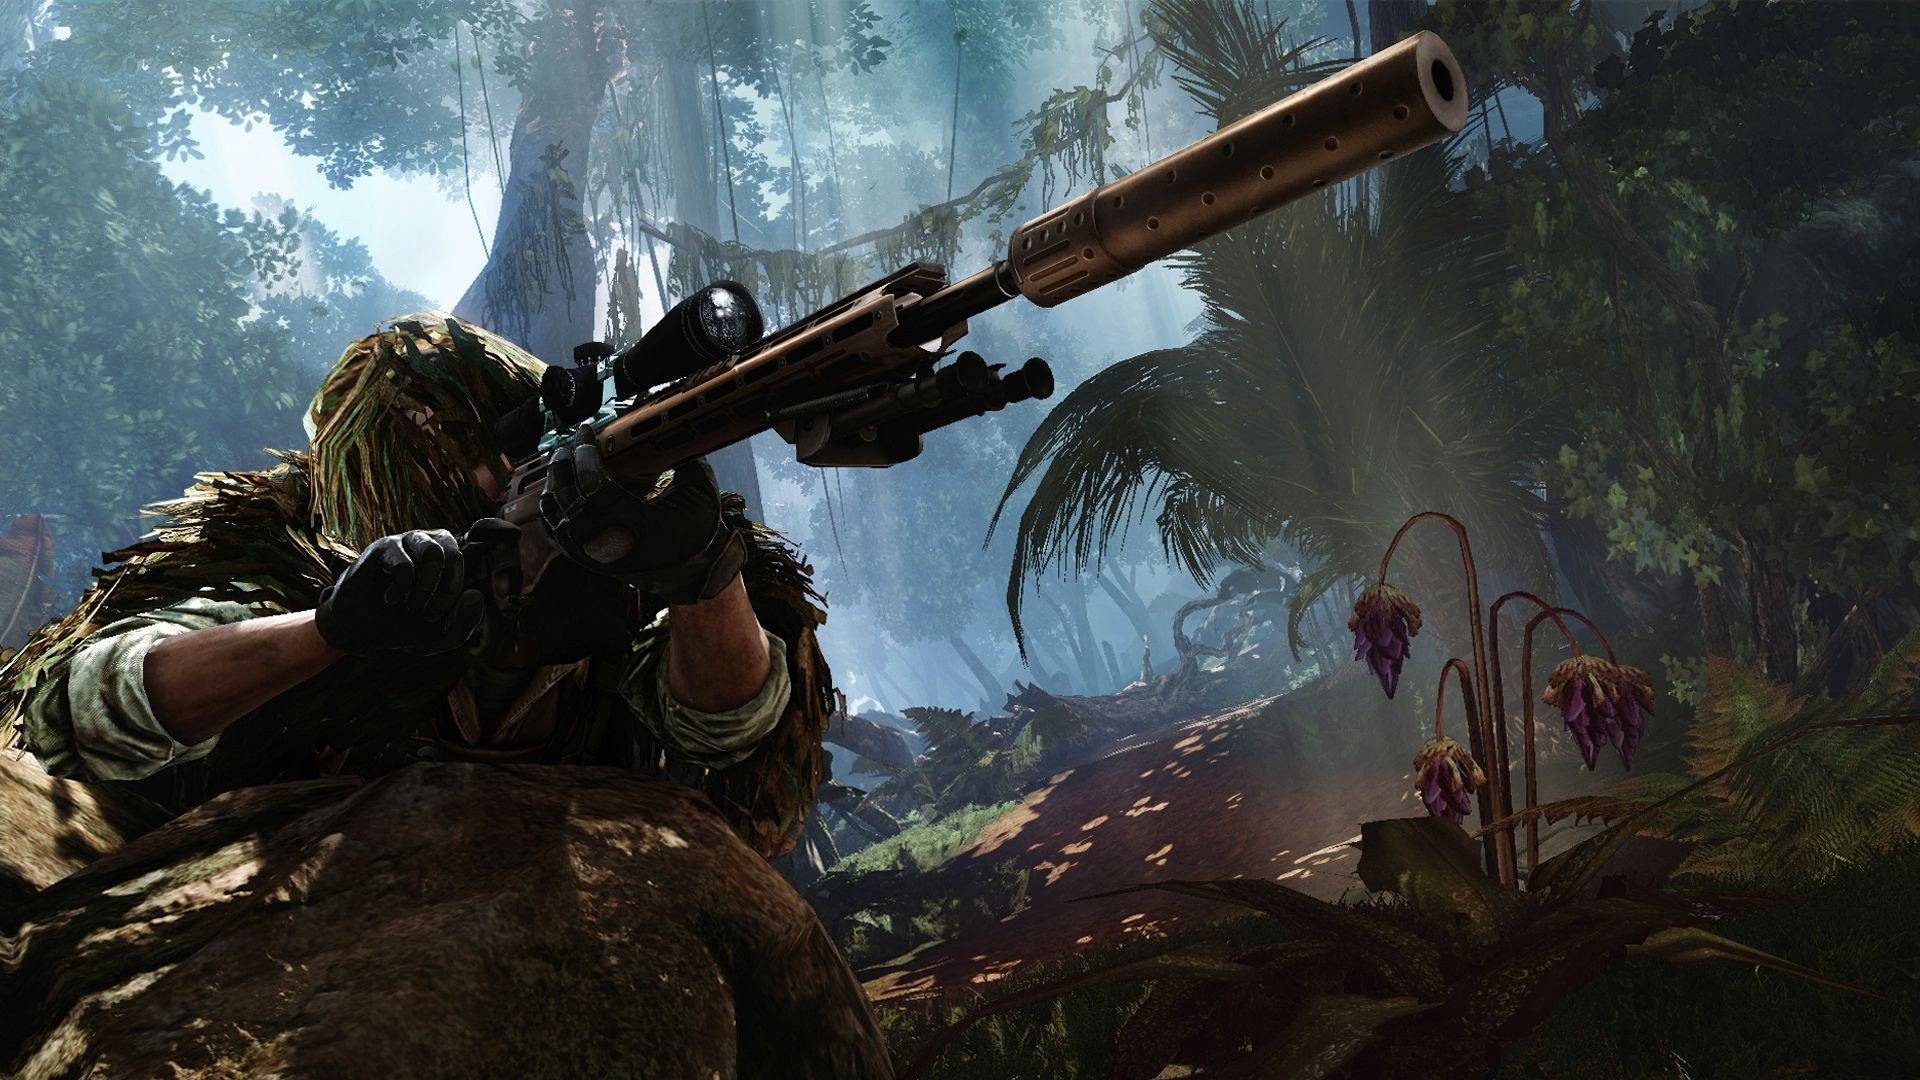 Sniper Ghost Warrior 3 High Definition Wallpapers